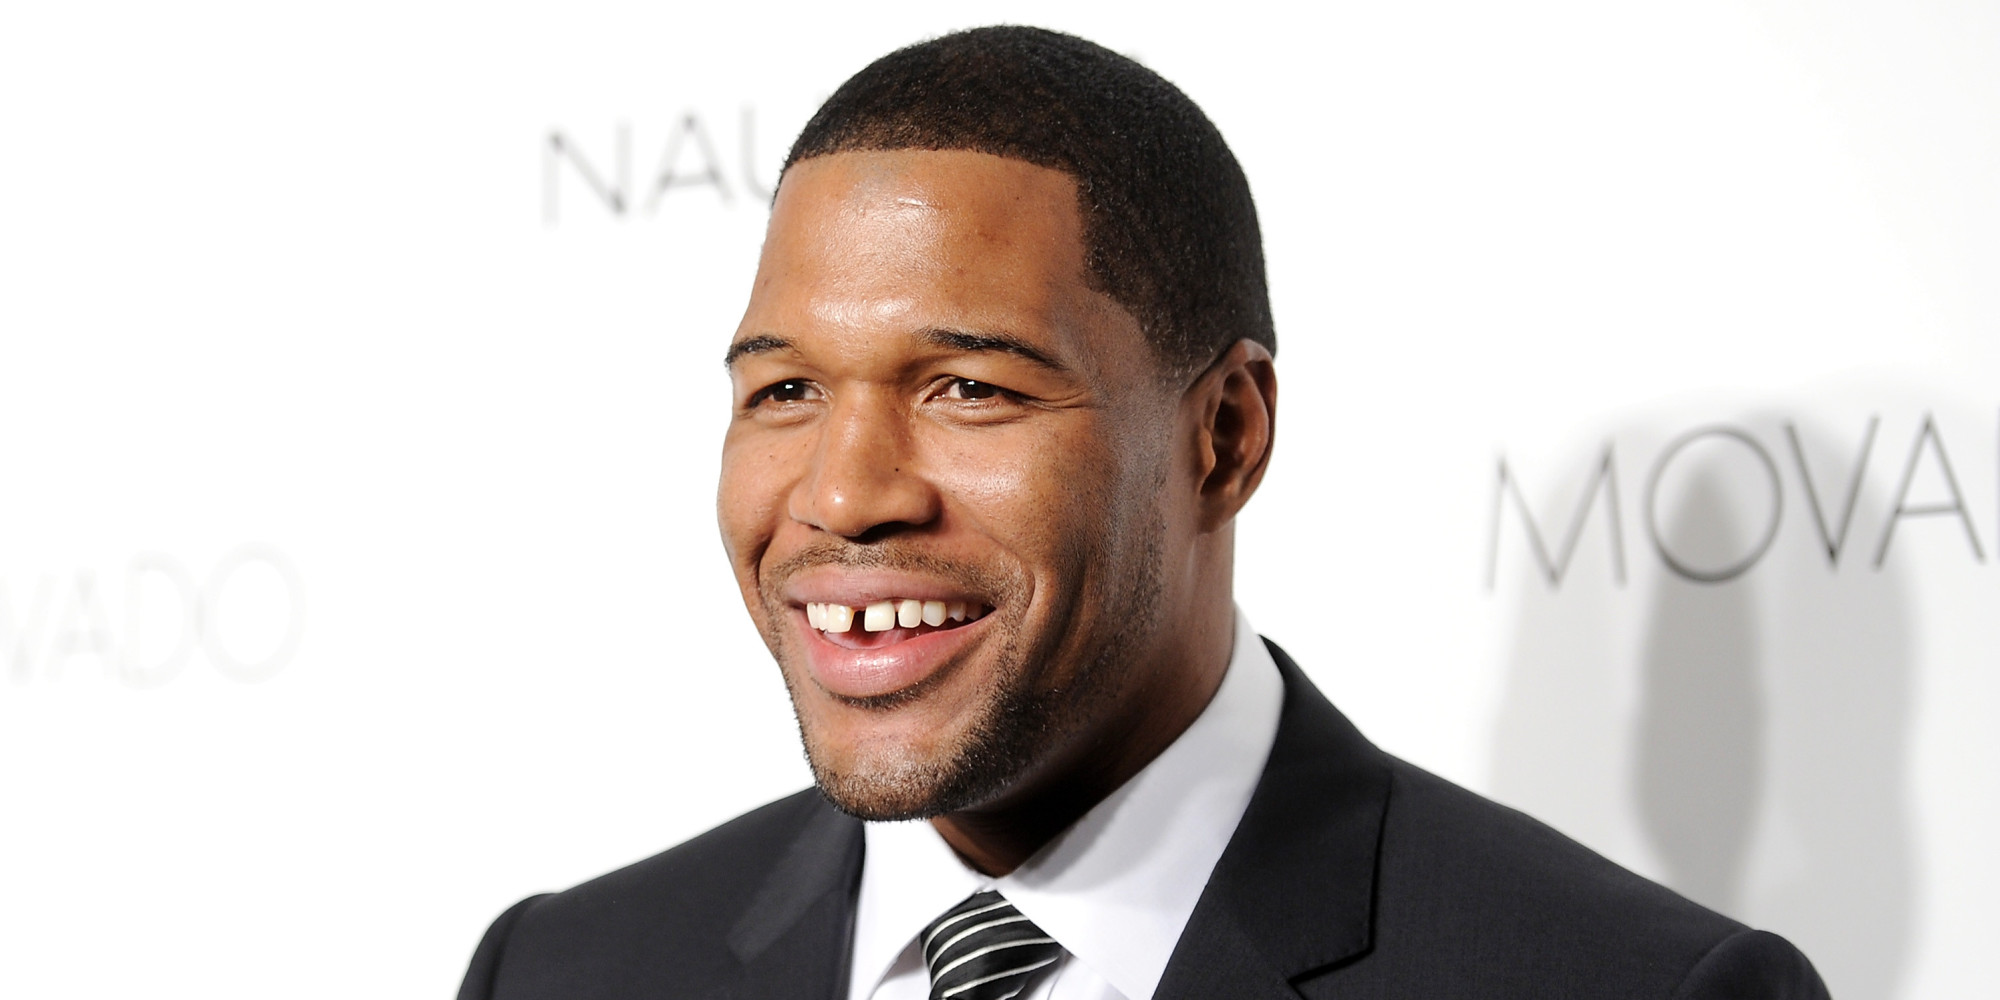 Michael Strahan Hairstyle 2019